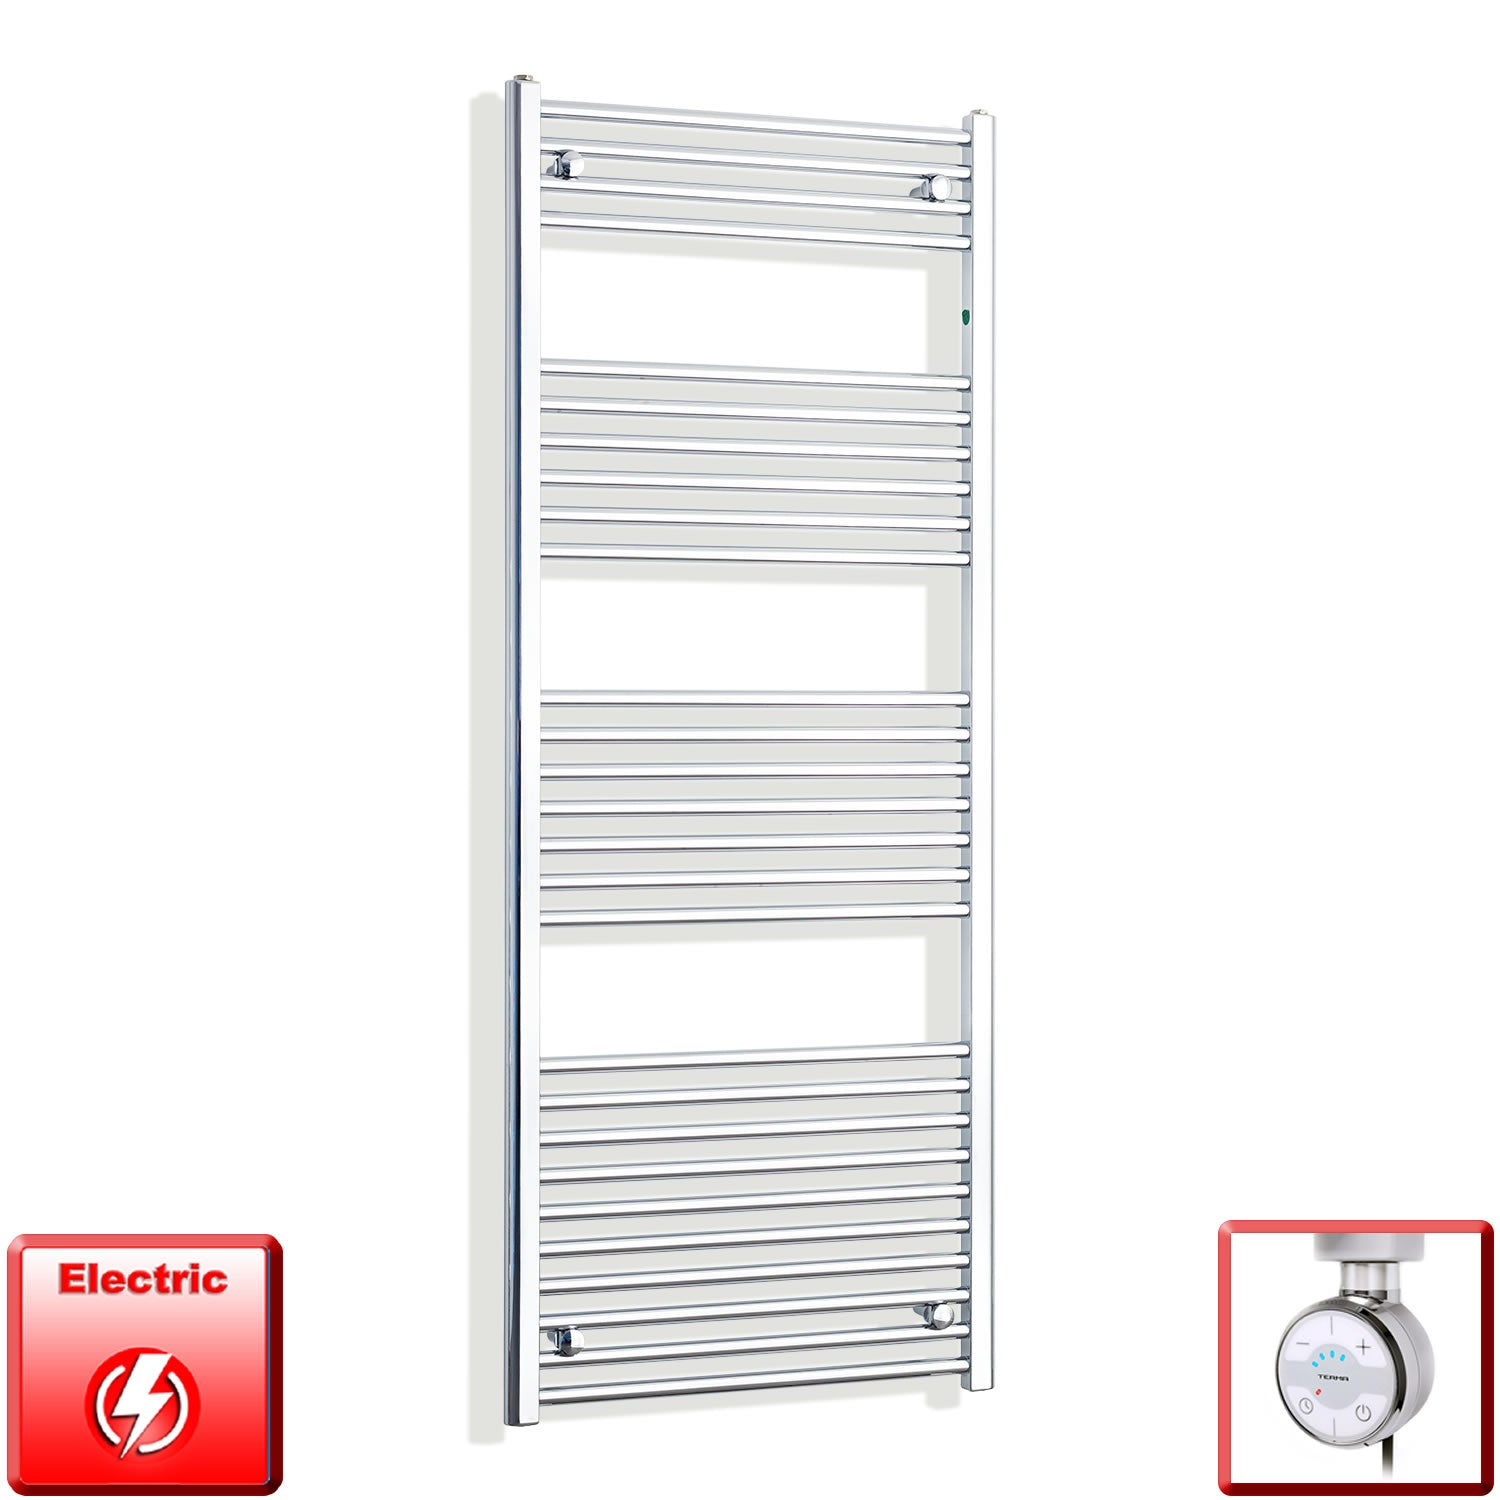 600mm Wide 1600mm High Pre-Filled Chrome Electric Towel Rail Radiator With Thermostatic MEG Element